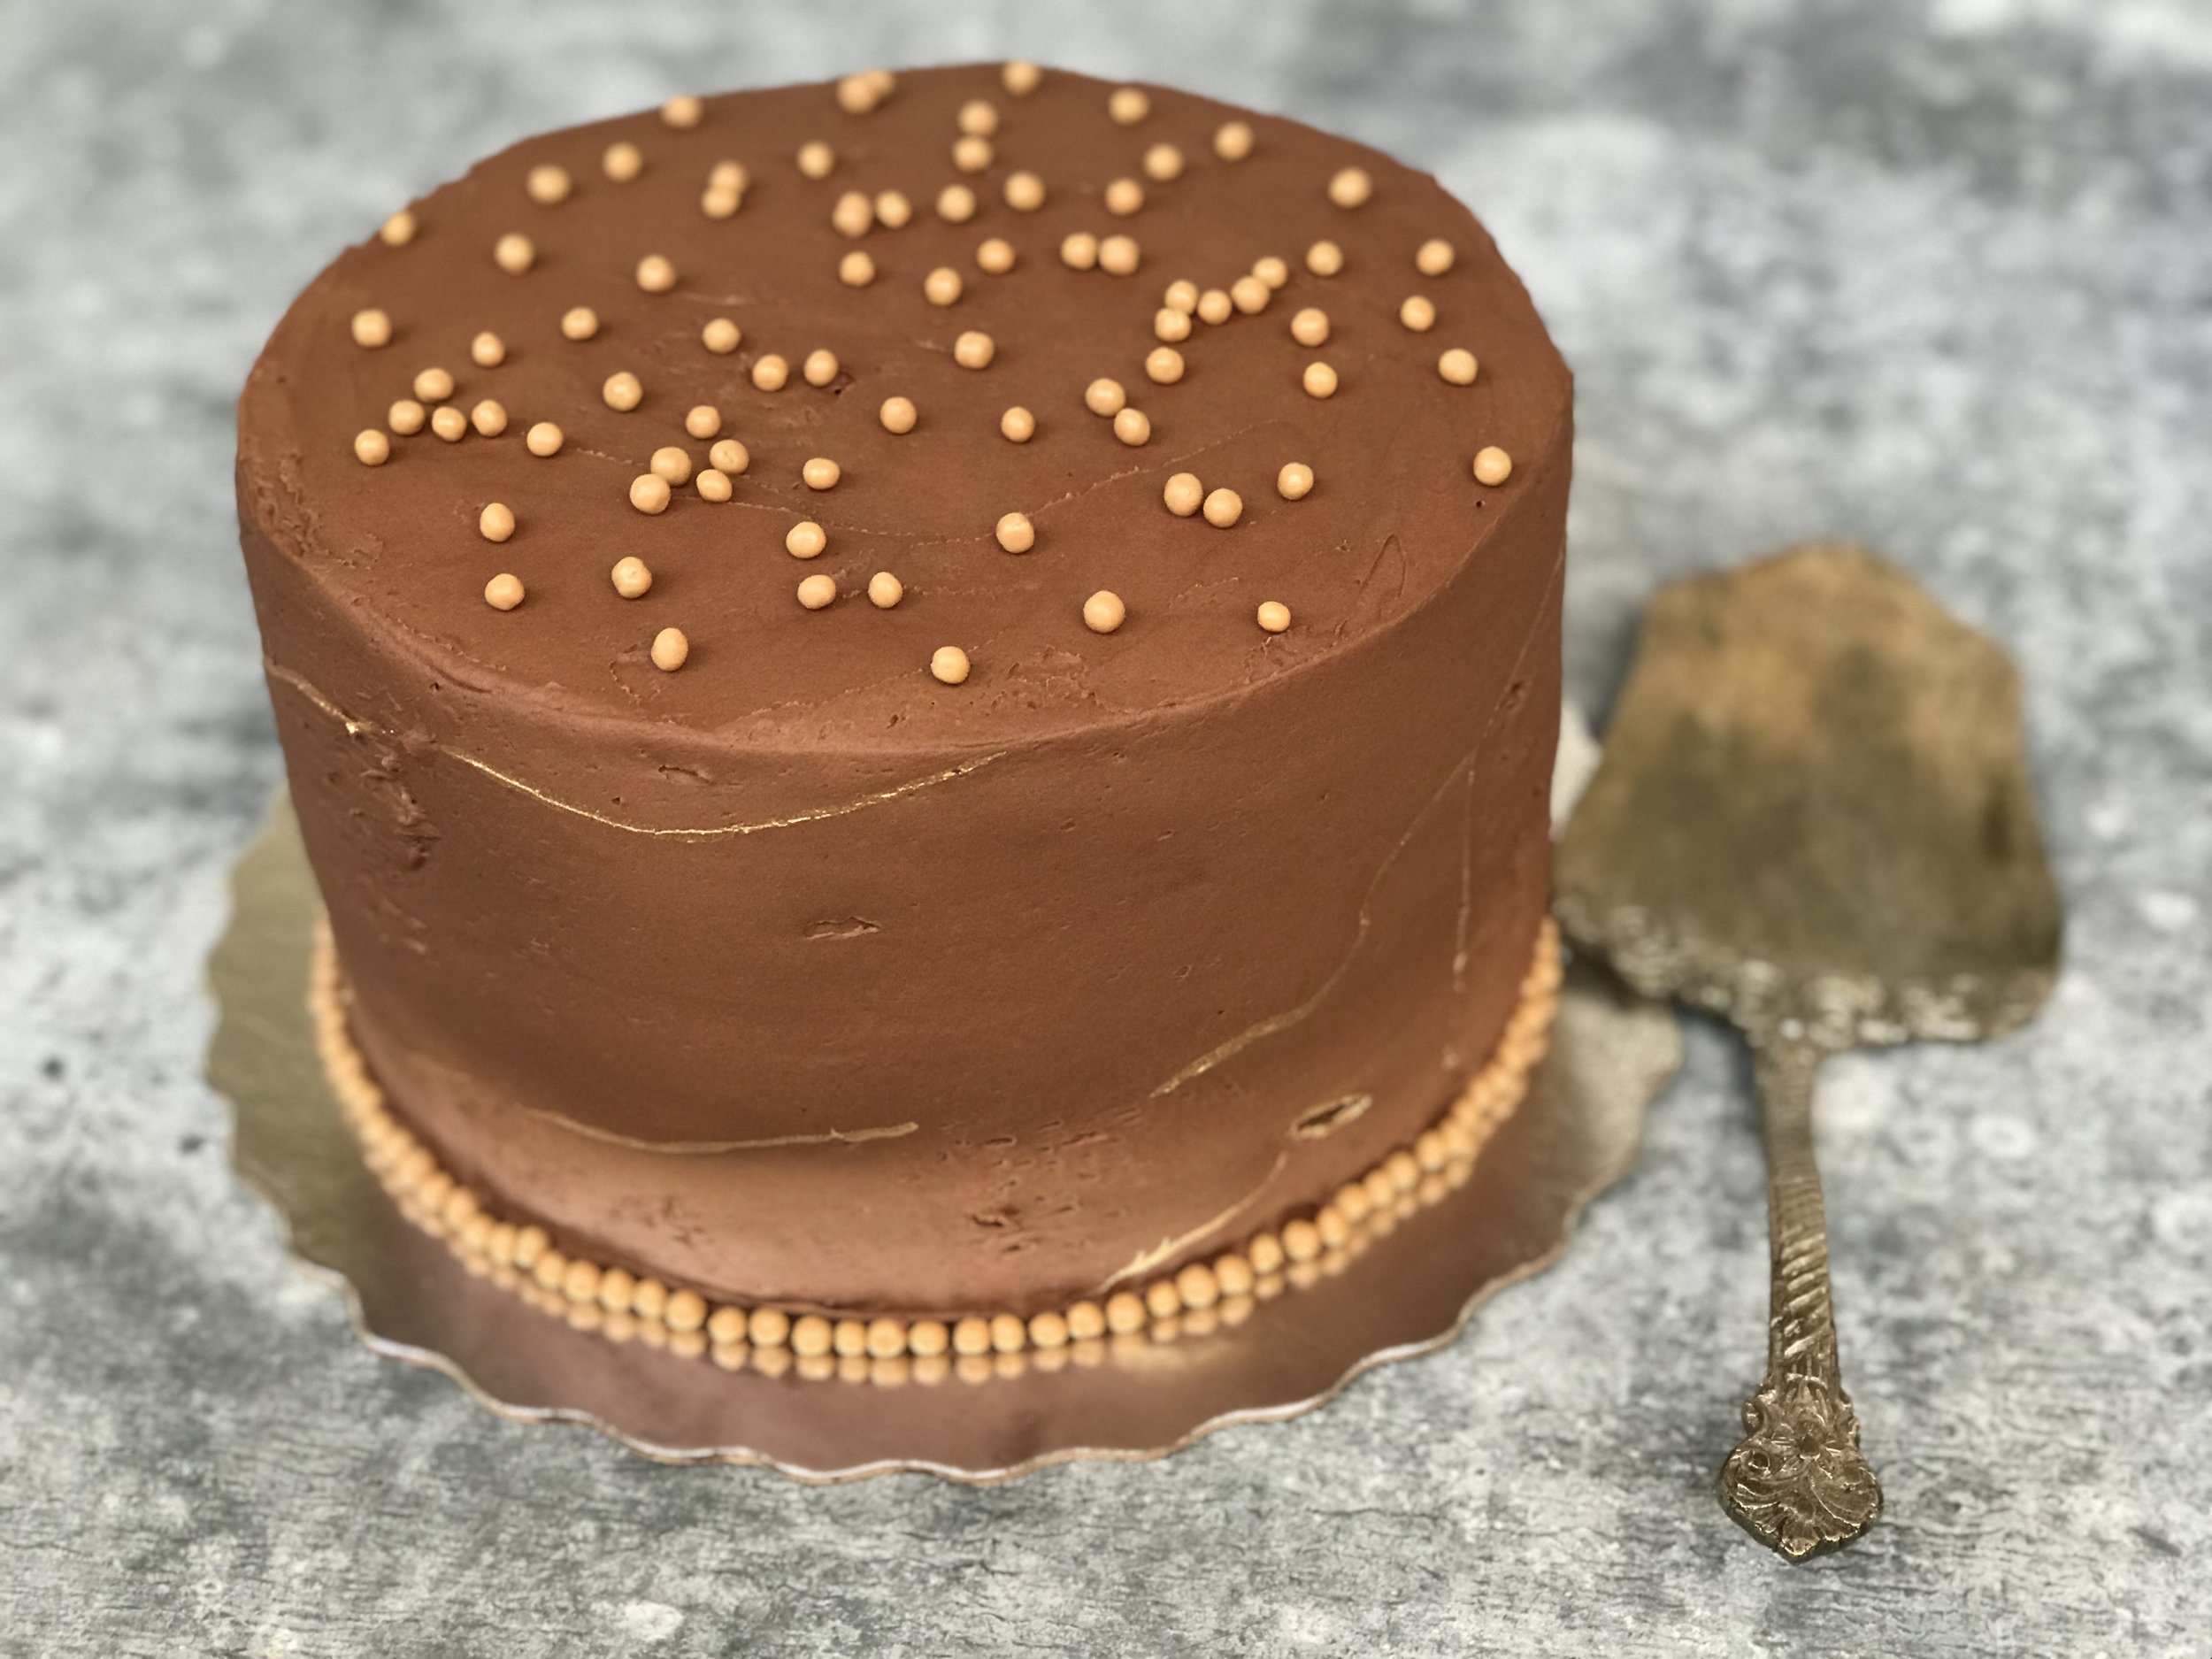 Chocolate cake with chocolate frosting. Decorated with Callebaut Crispearls: salted caramel